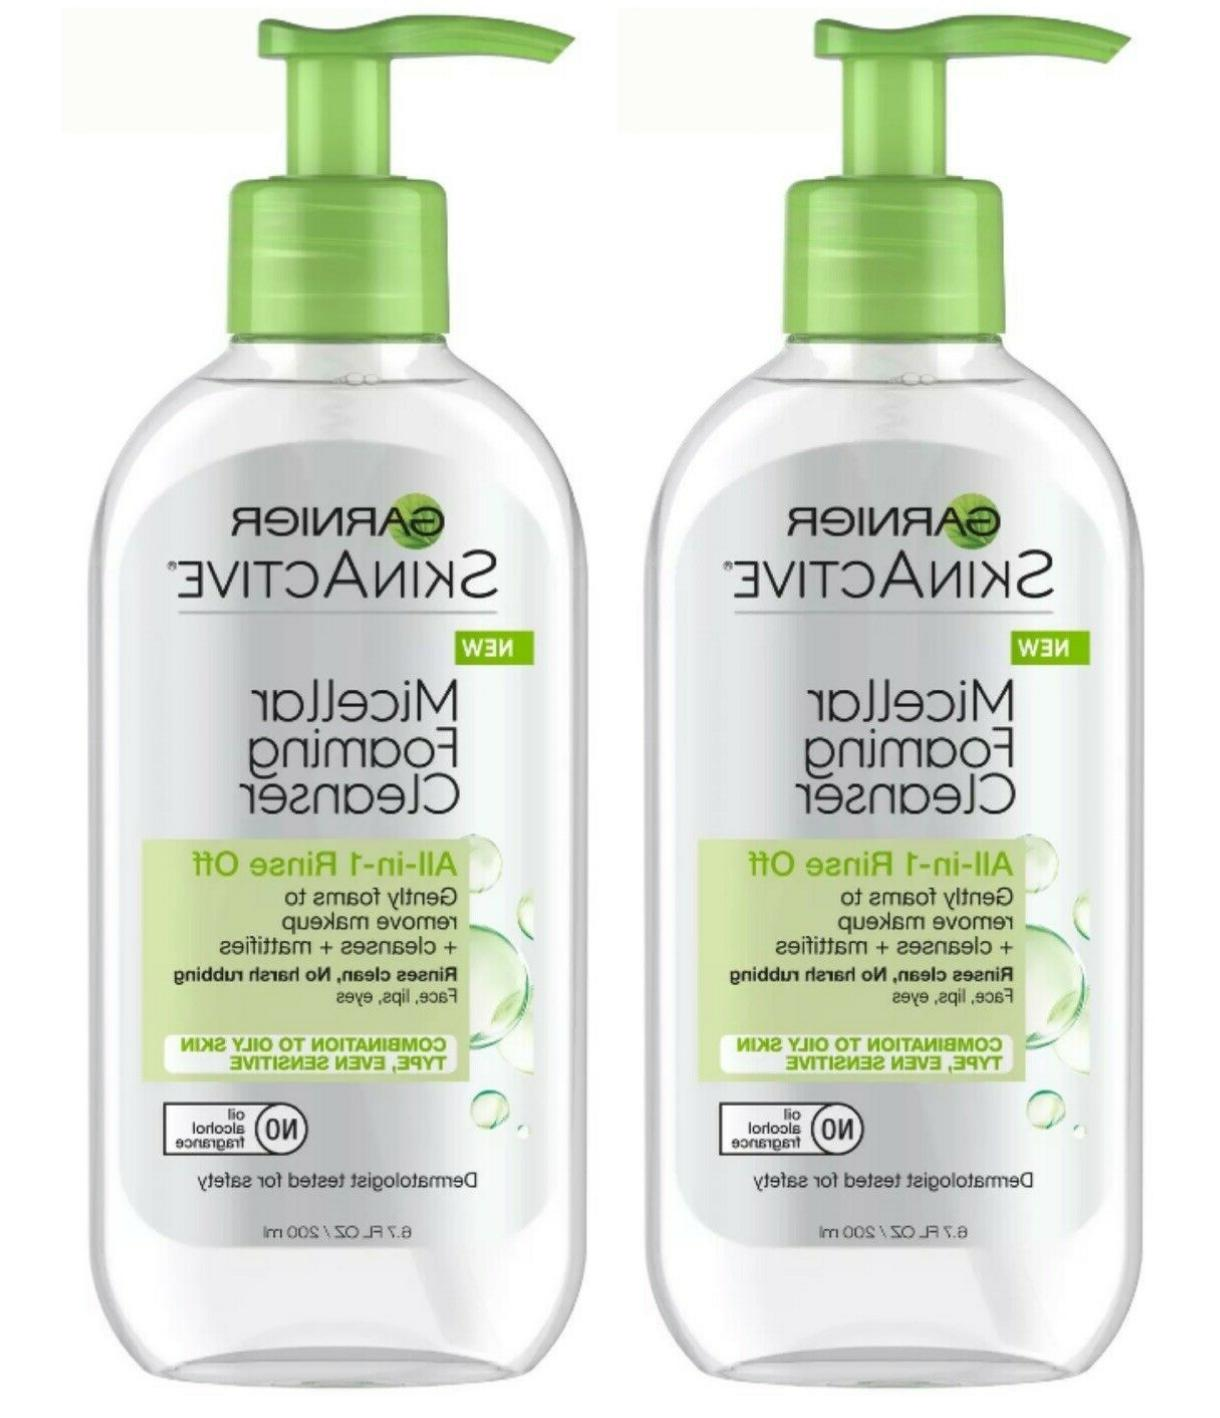 Garnier SkinActive Micellar Foaming Face Wash for Oily Skin,